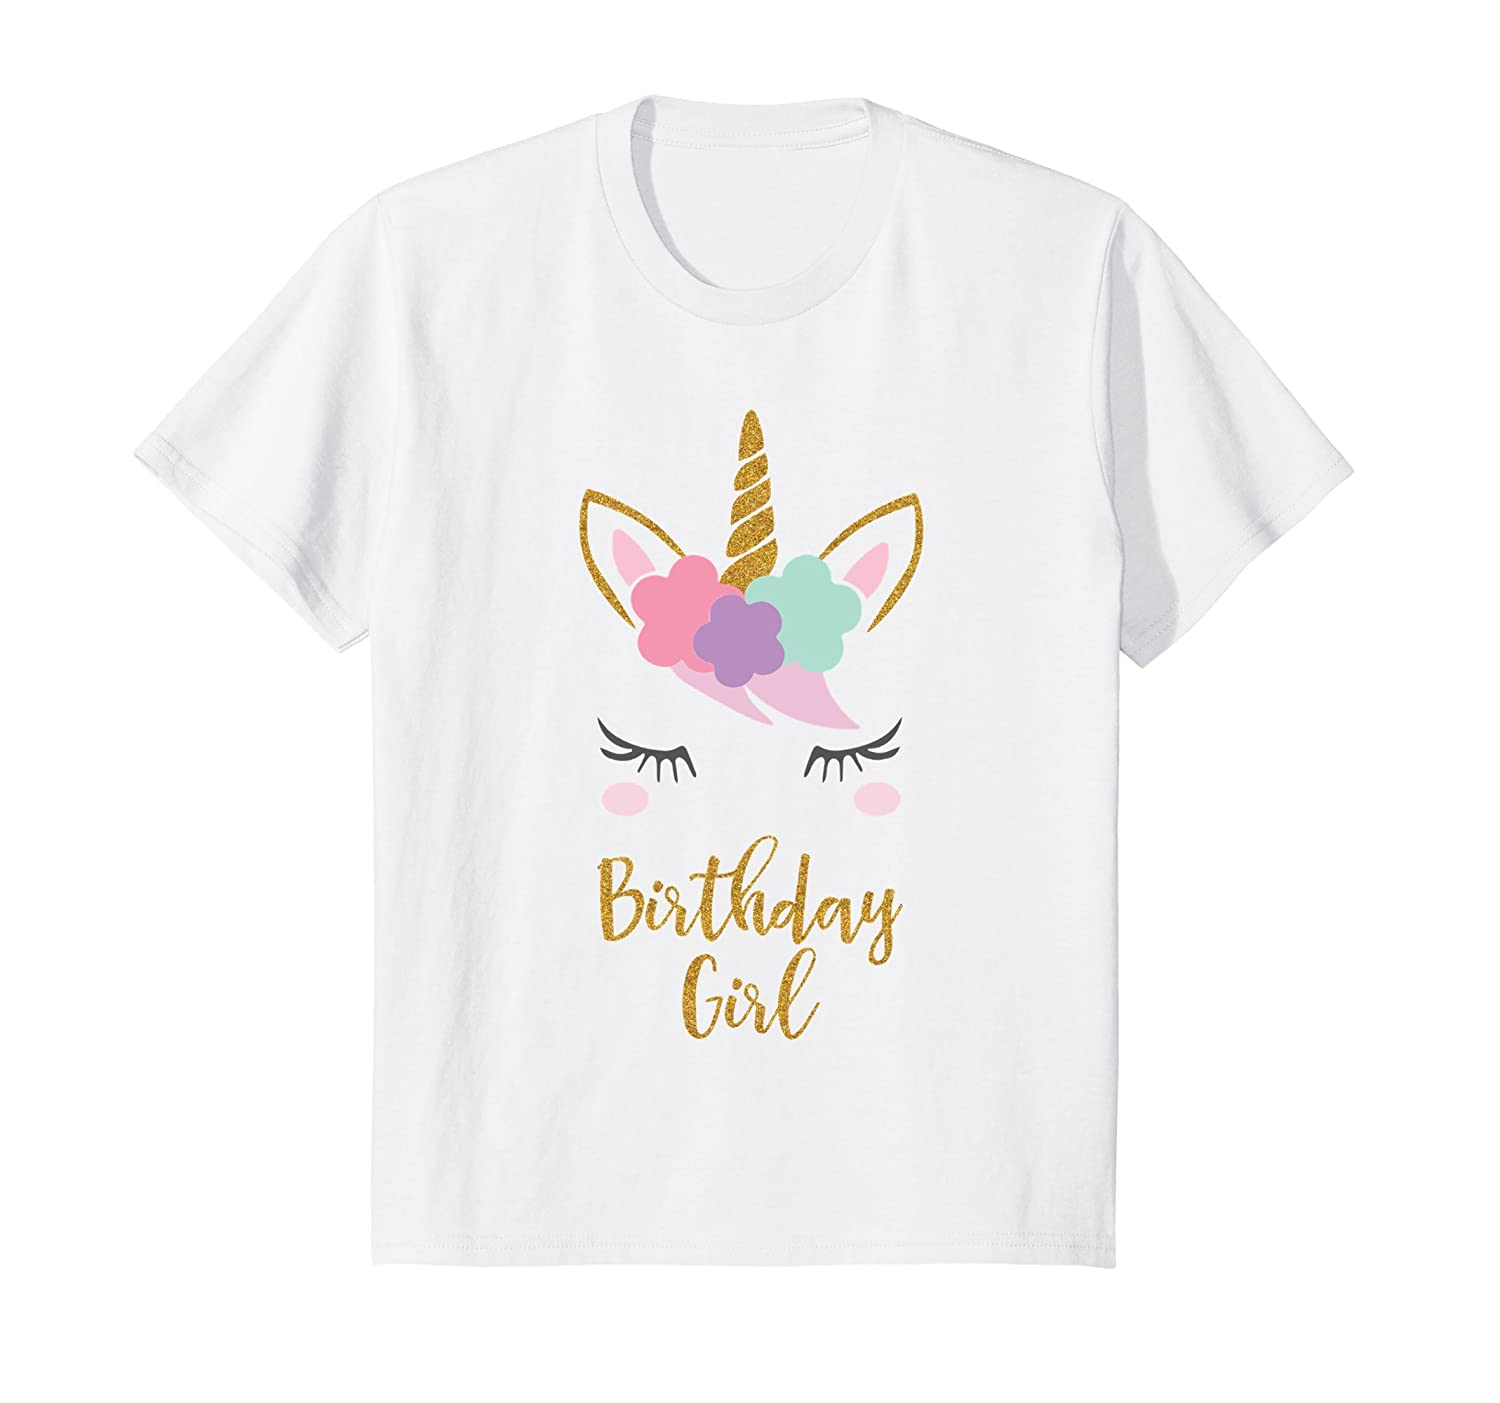 Personalized Birthday Shirts For Parents